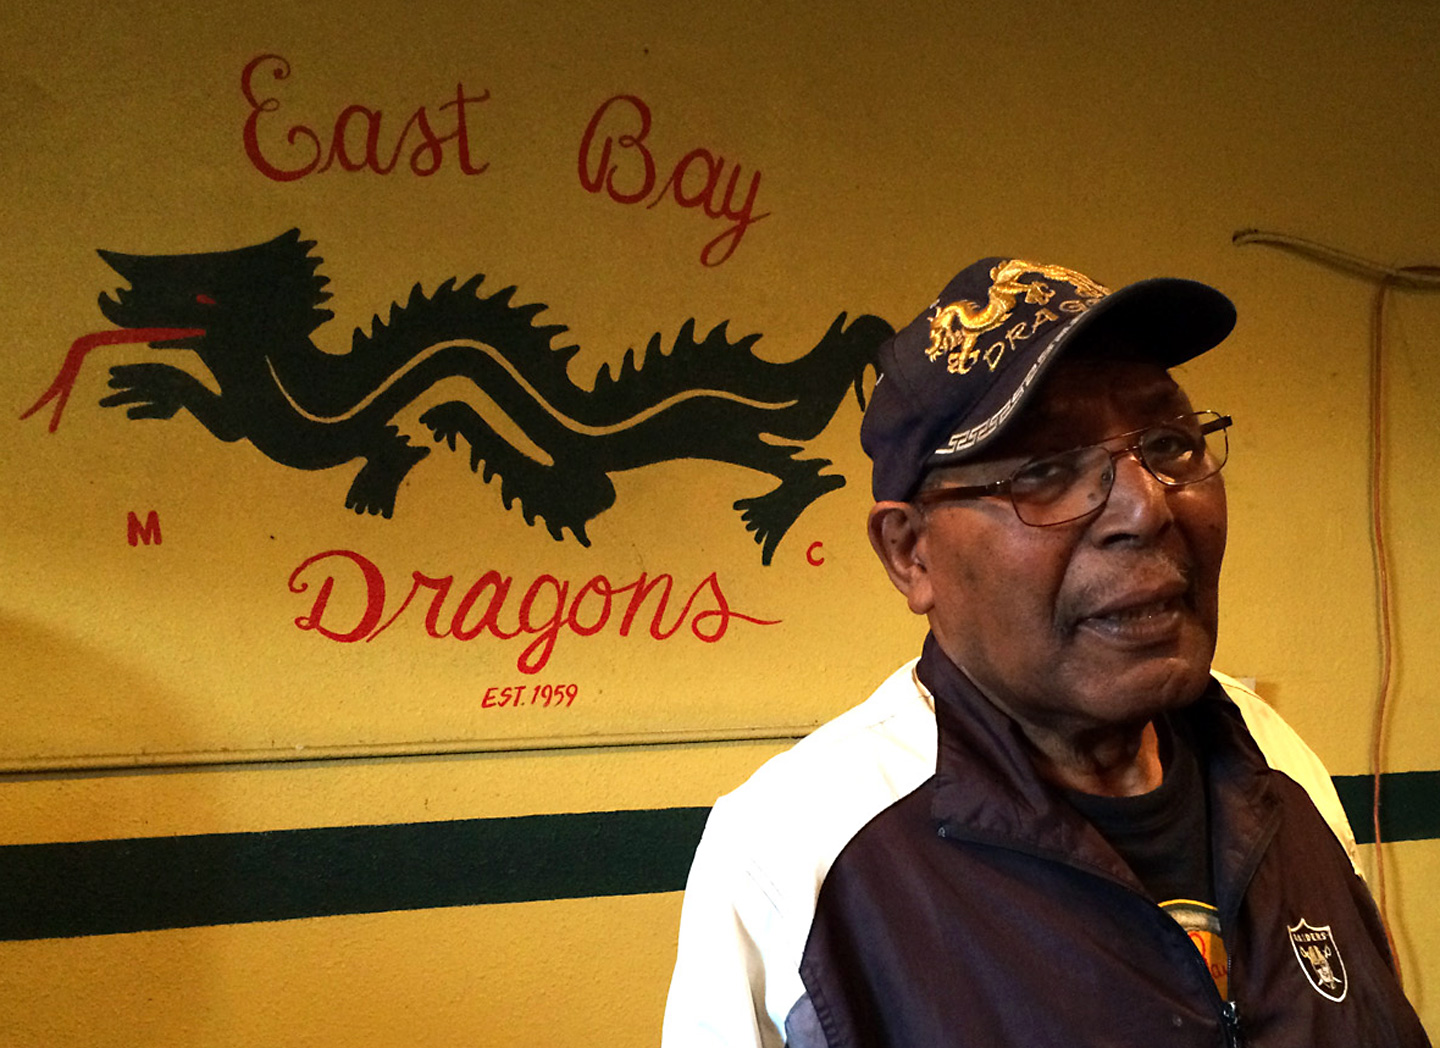 East Bay Dragons Motorcycle Club: On the Road for 55 Years